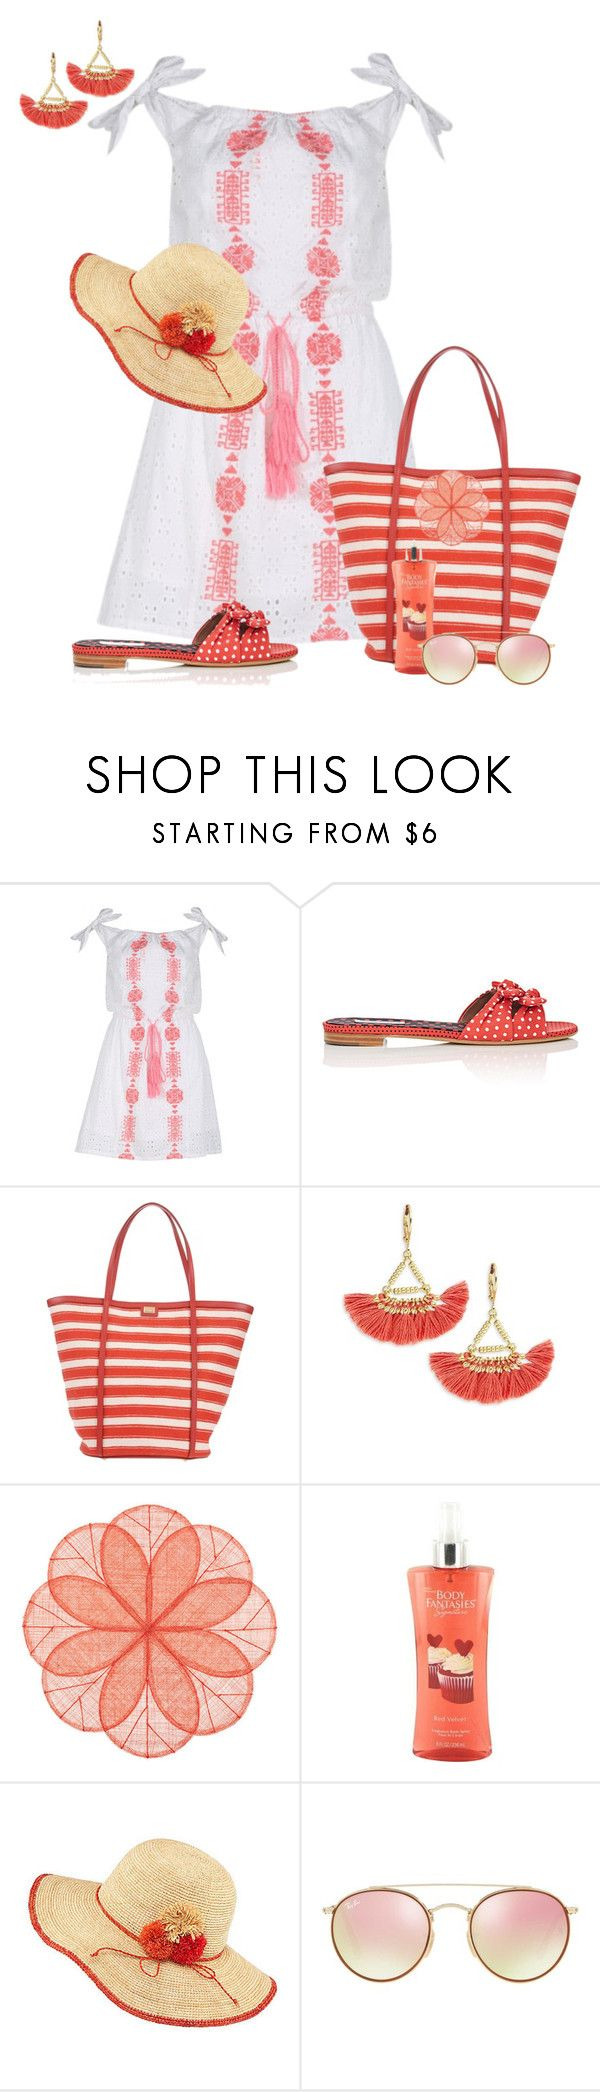 """Untitled #351"" by prissy50 ❤ liked on Polyvore featuring Pampelone, Tabitha Simmons, Dolce&Gabbana, Shashi, Deborah Rhodes, Frontgate and Ray-Ban"